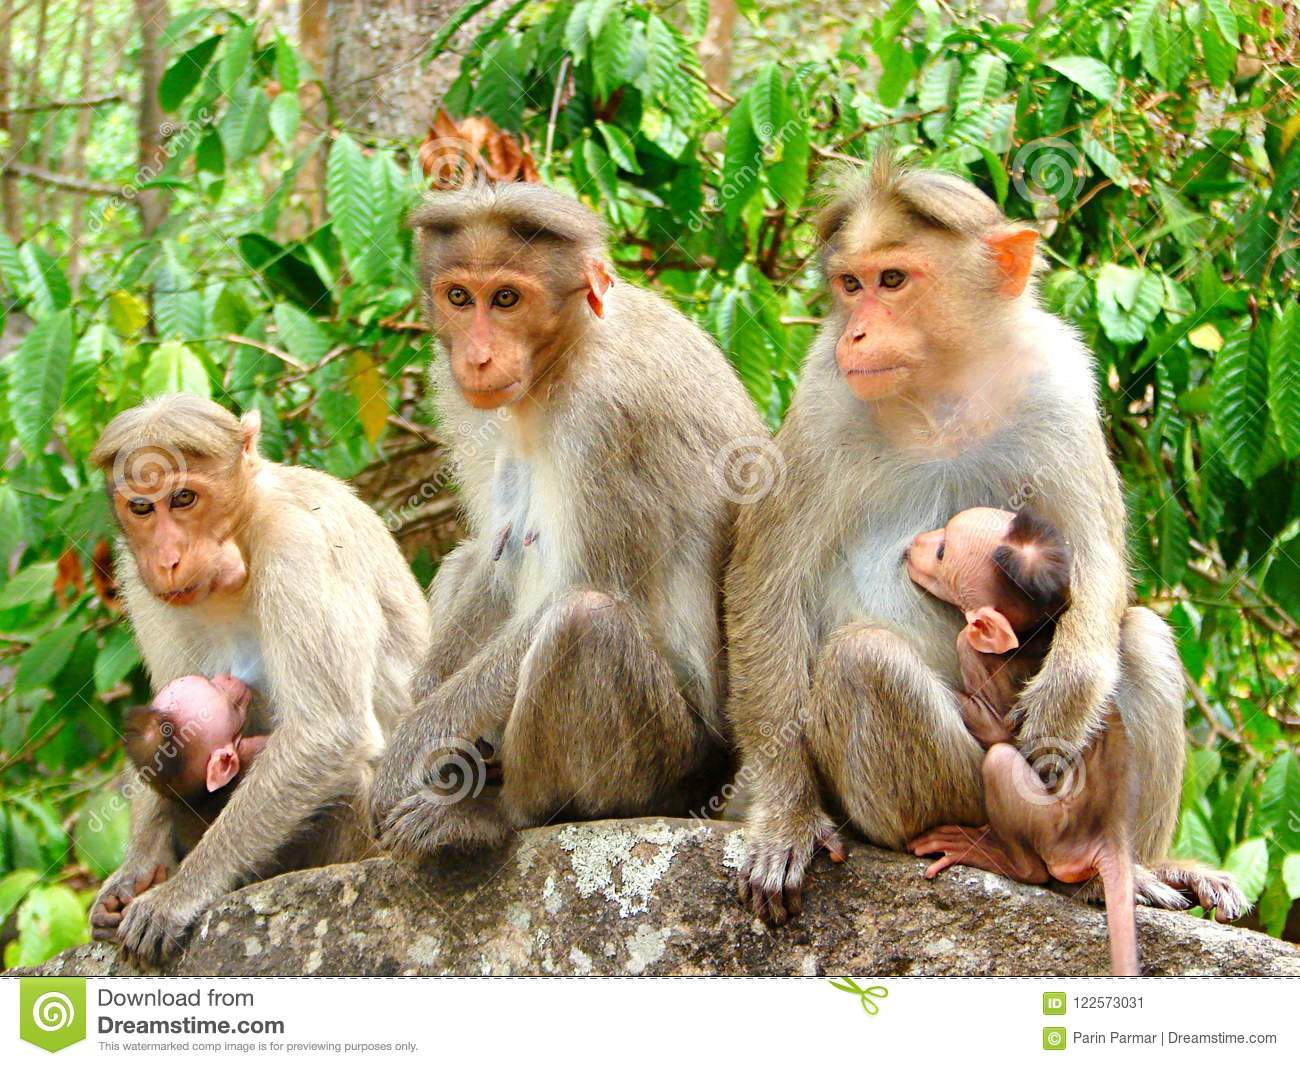 Team Monkey - Different Facial Expressions - Group of Rhesus Macaque - Macaca Mulatta